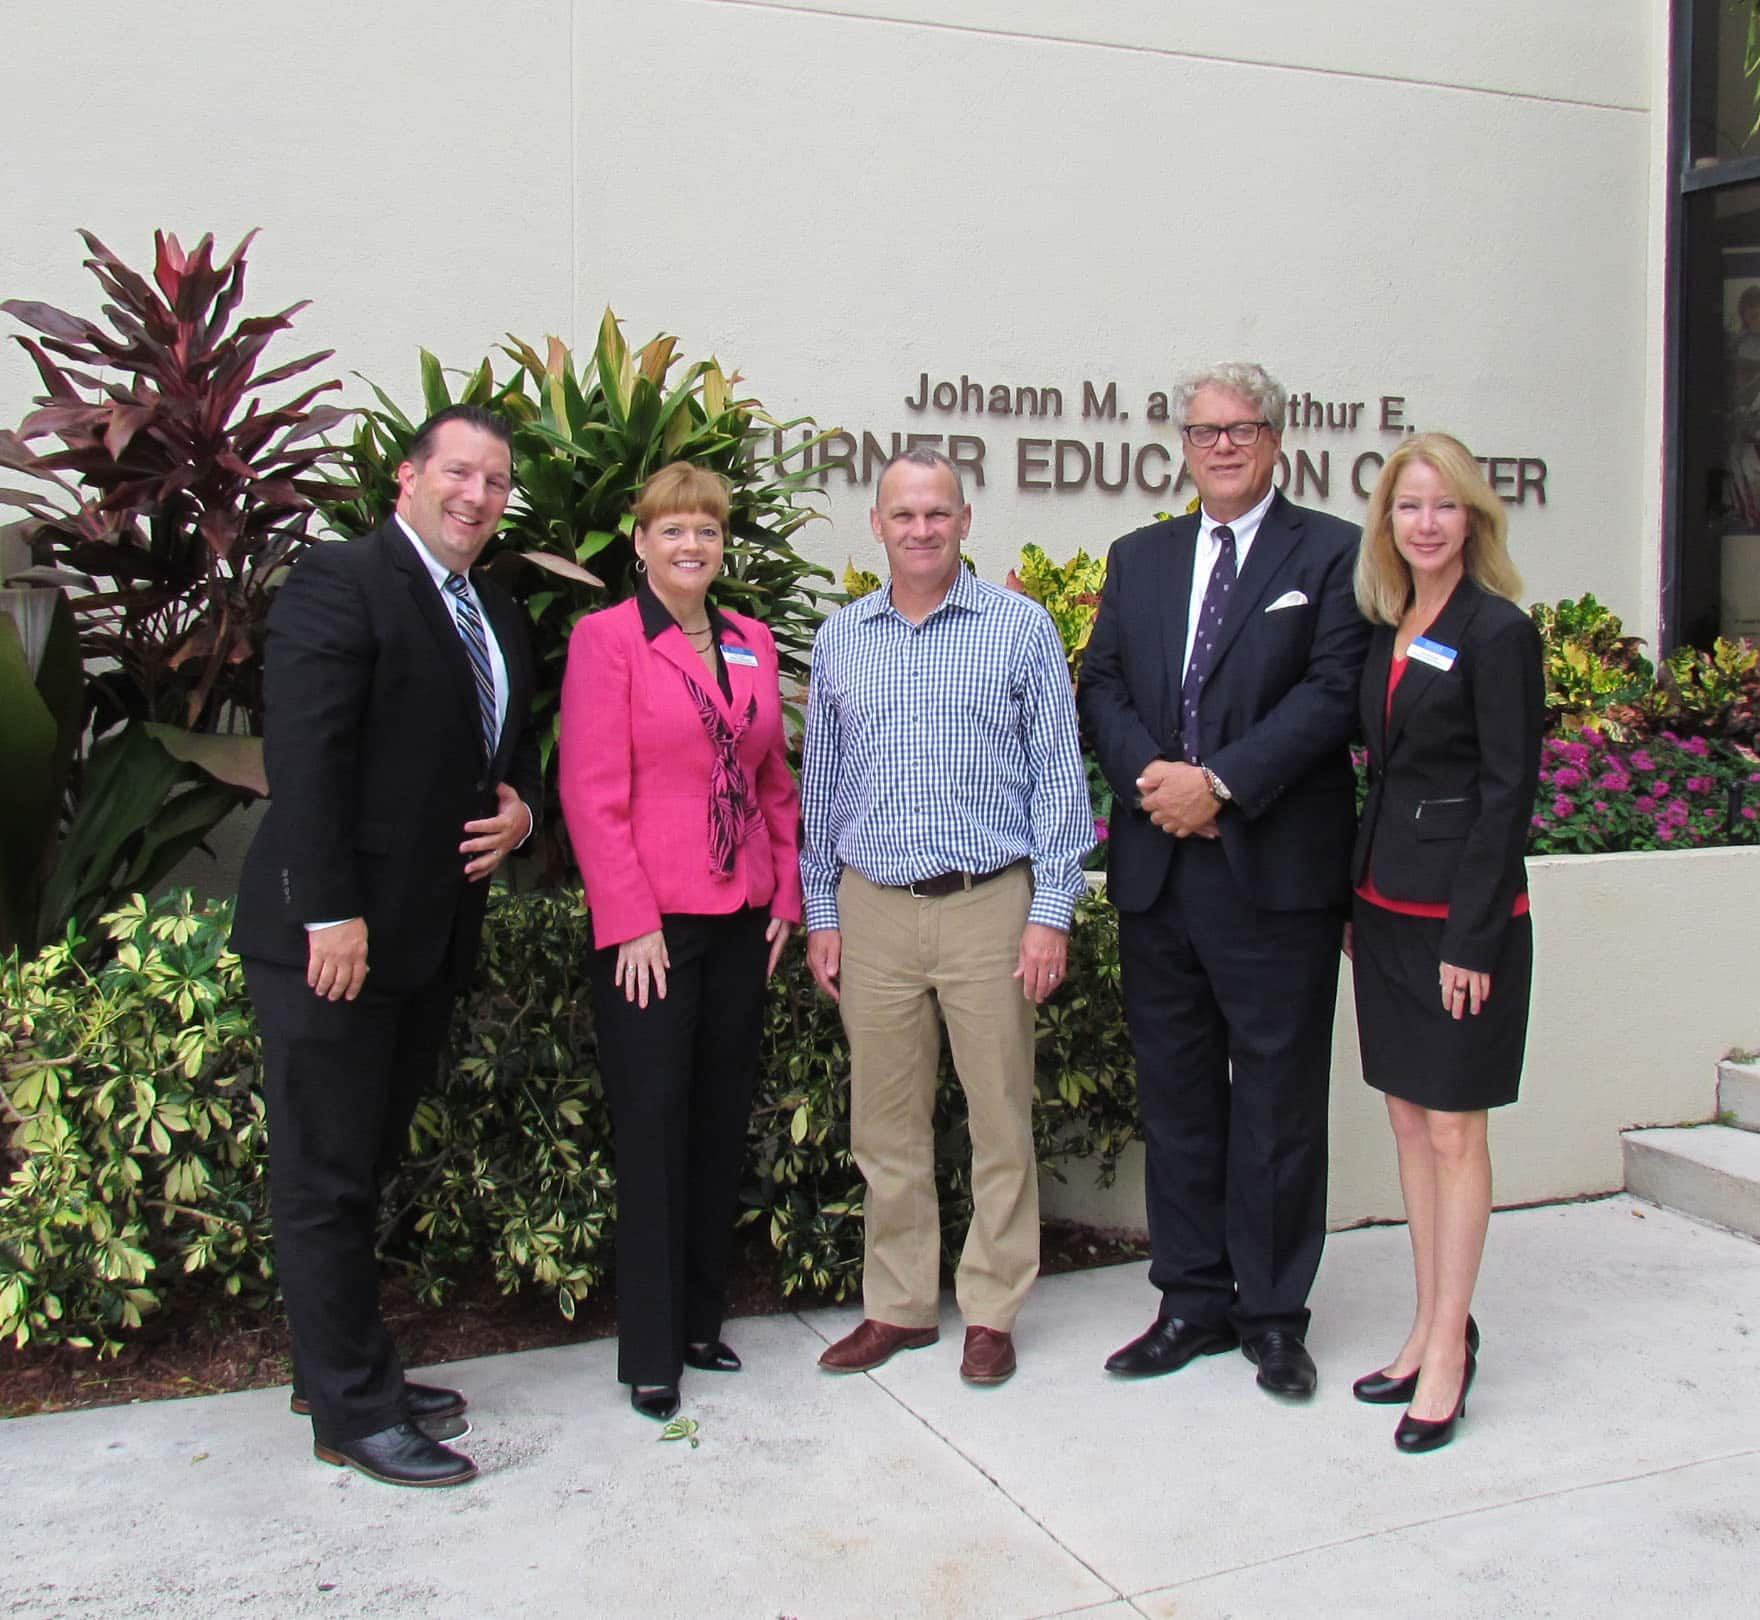 Incoming Speaker of the Florida House of Representatives, Richard Corcoran, Tours Flagship Campus